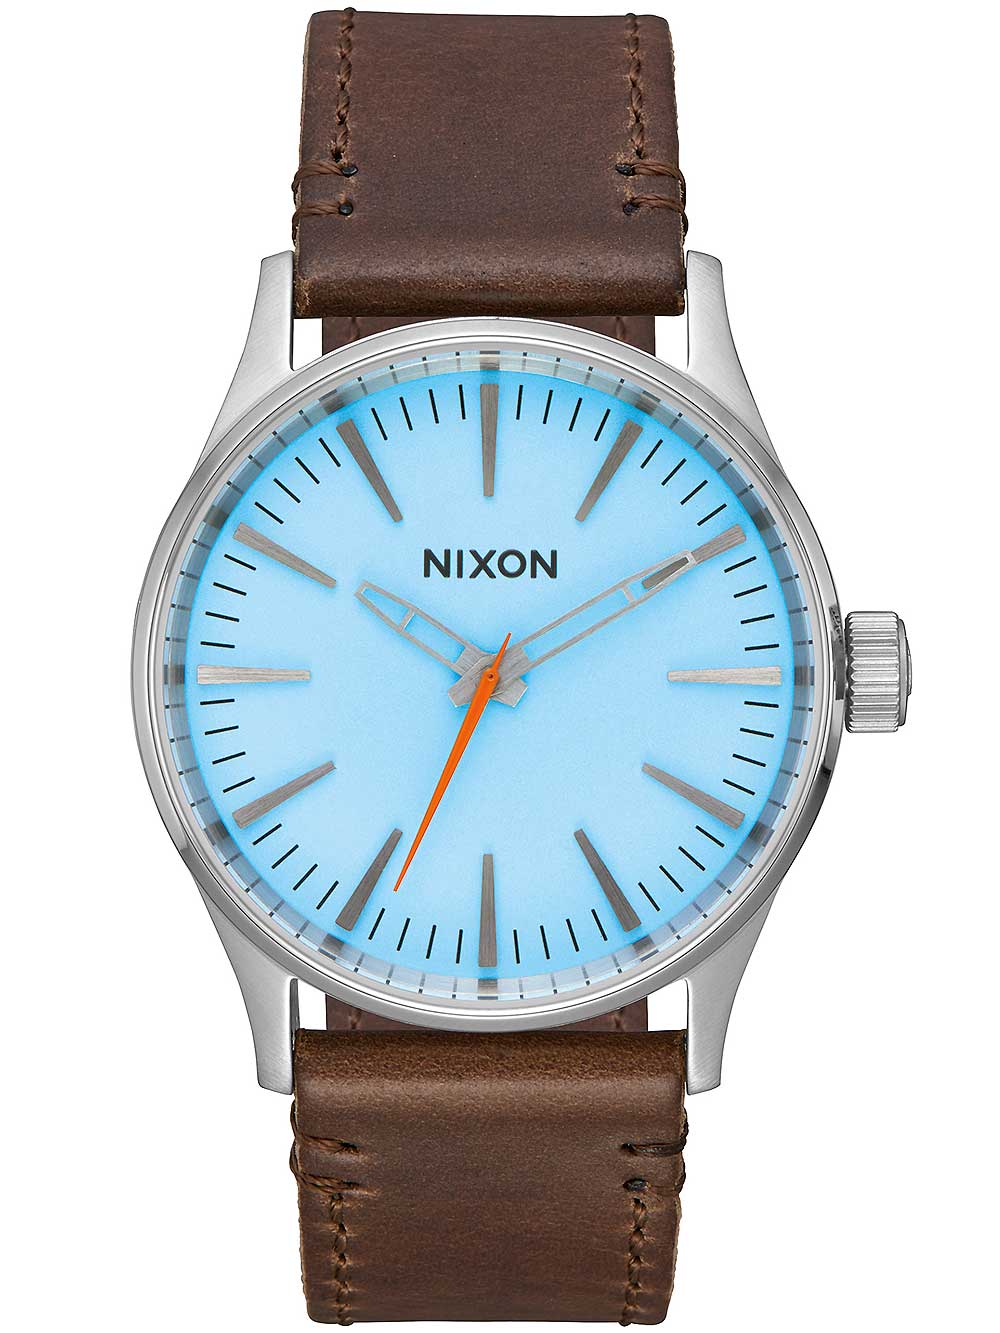 A377-2547 Sentry Leather 38mm Sky Blue Taupe 10ATM